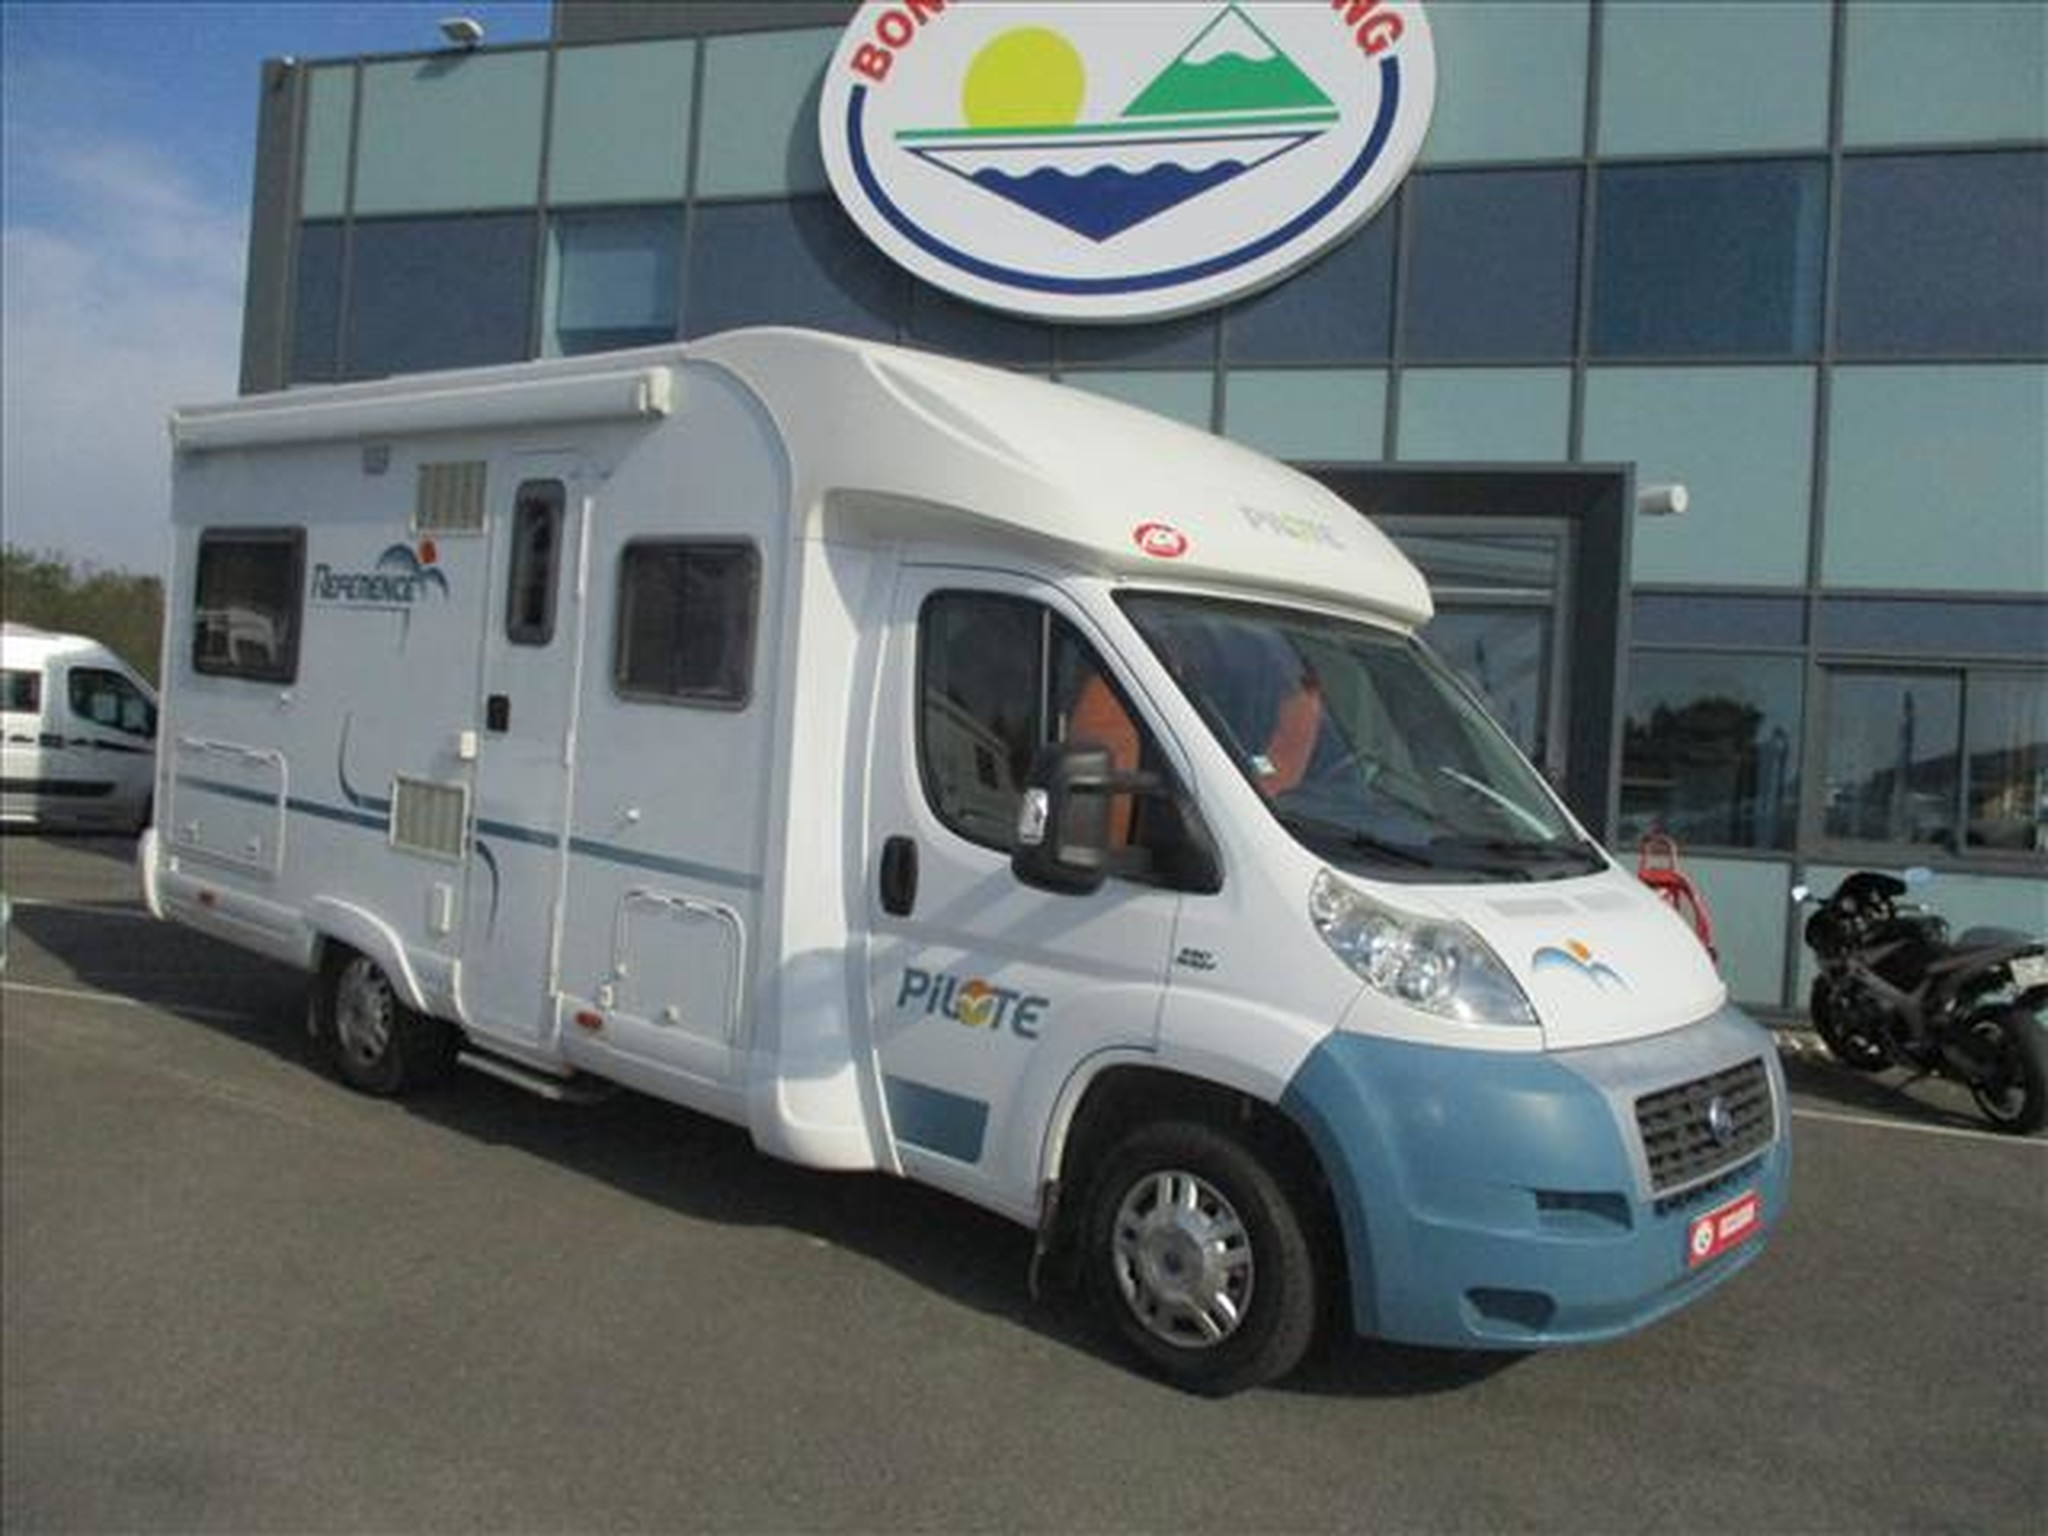 Camping-car PILOTE REFERENCE P670 FIAT DUCATO 2.3L JTD 130